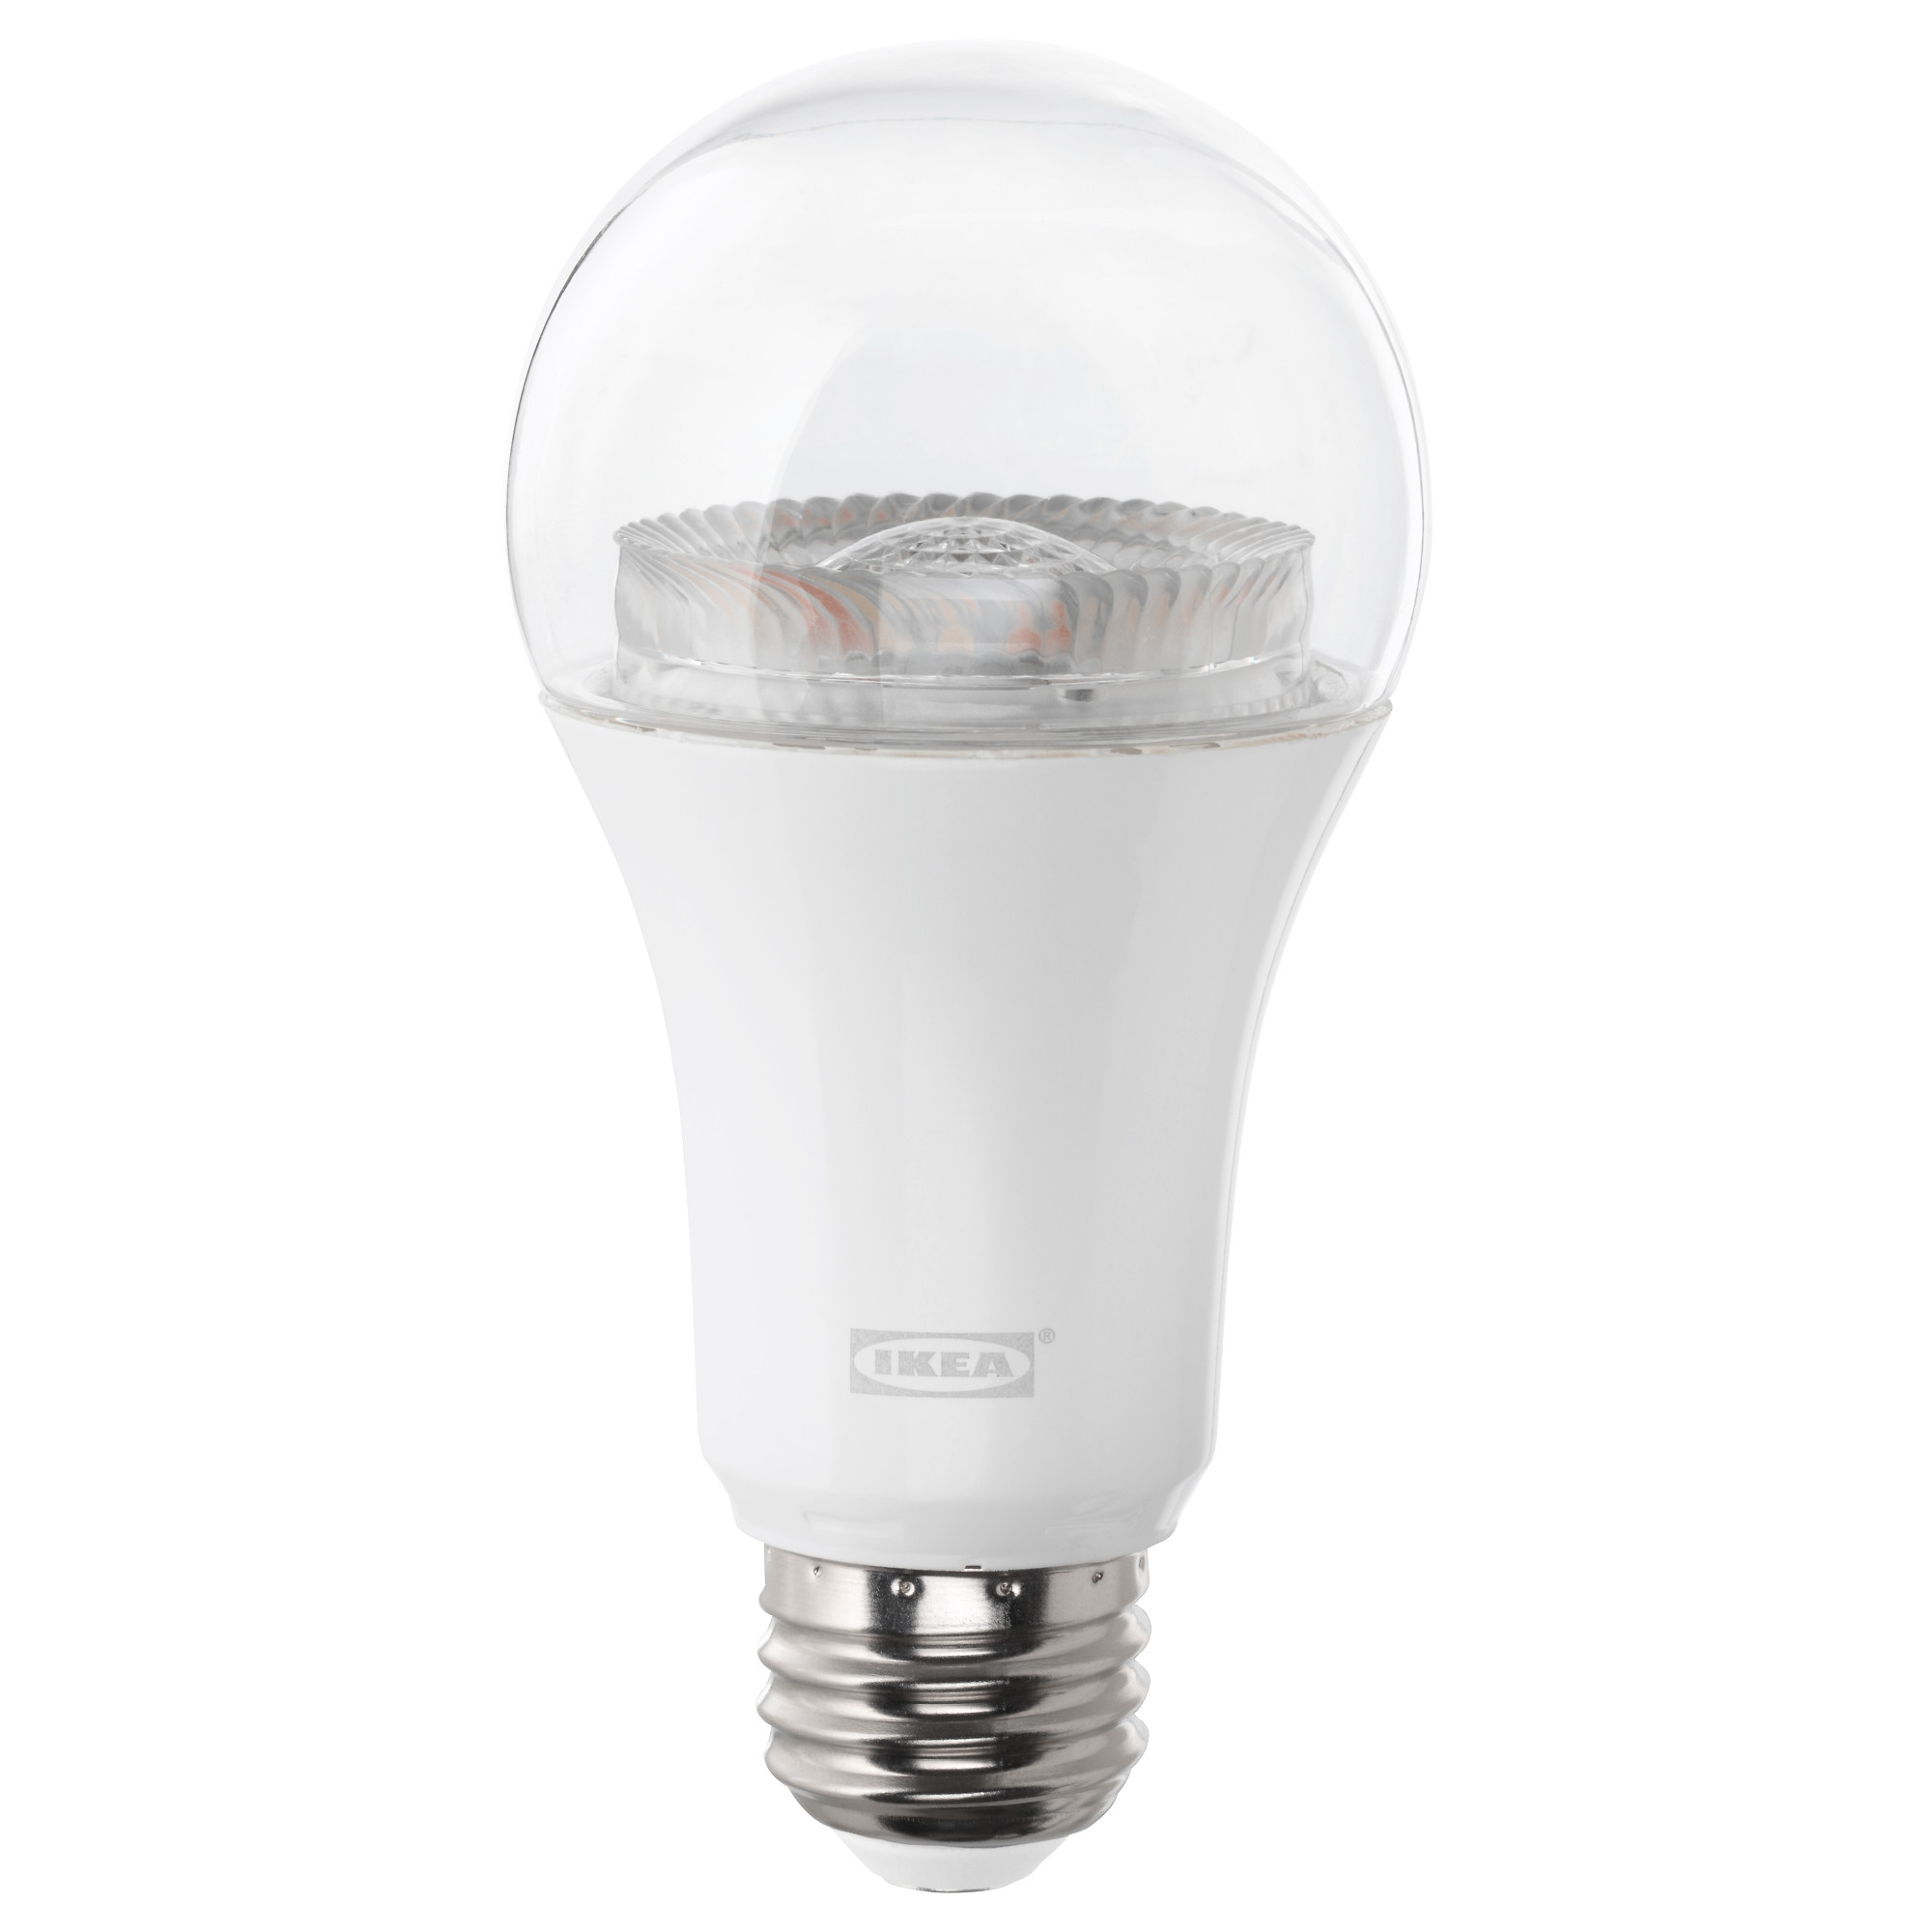 Smart Led Bulb TrÅdfri Smart Led Bulb E26 950 Lumen